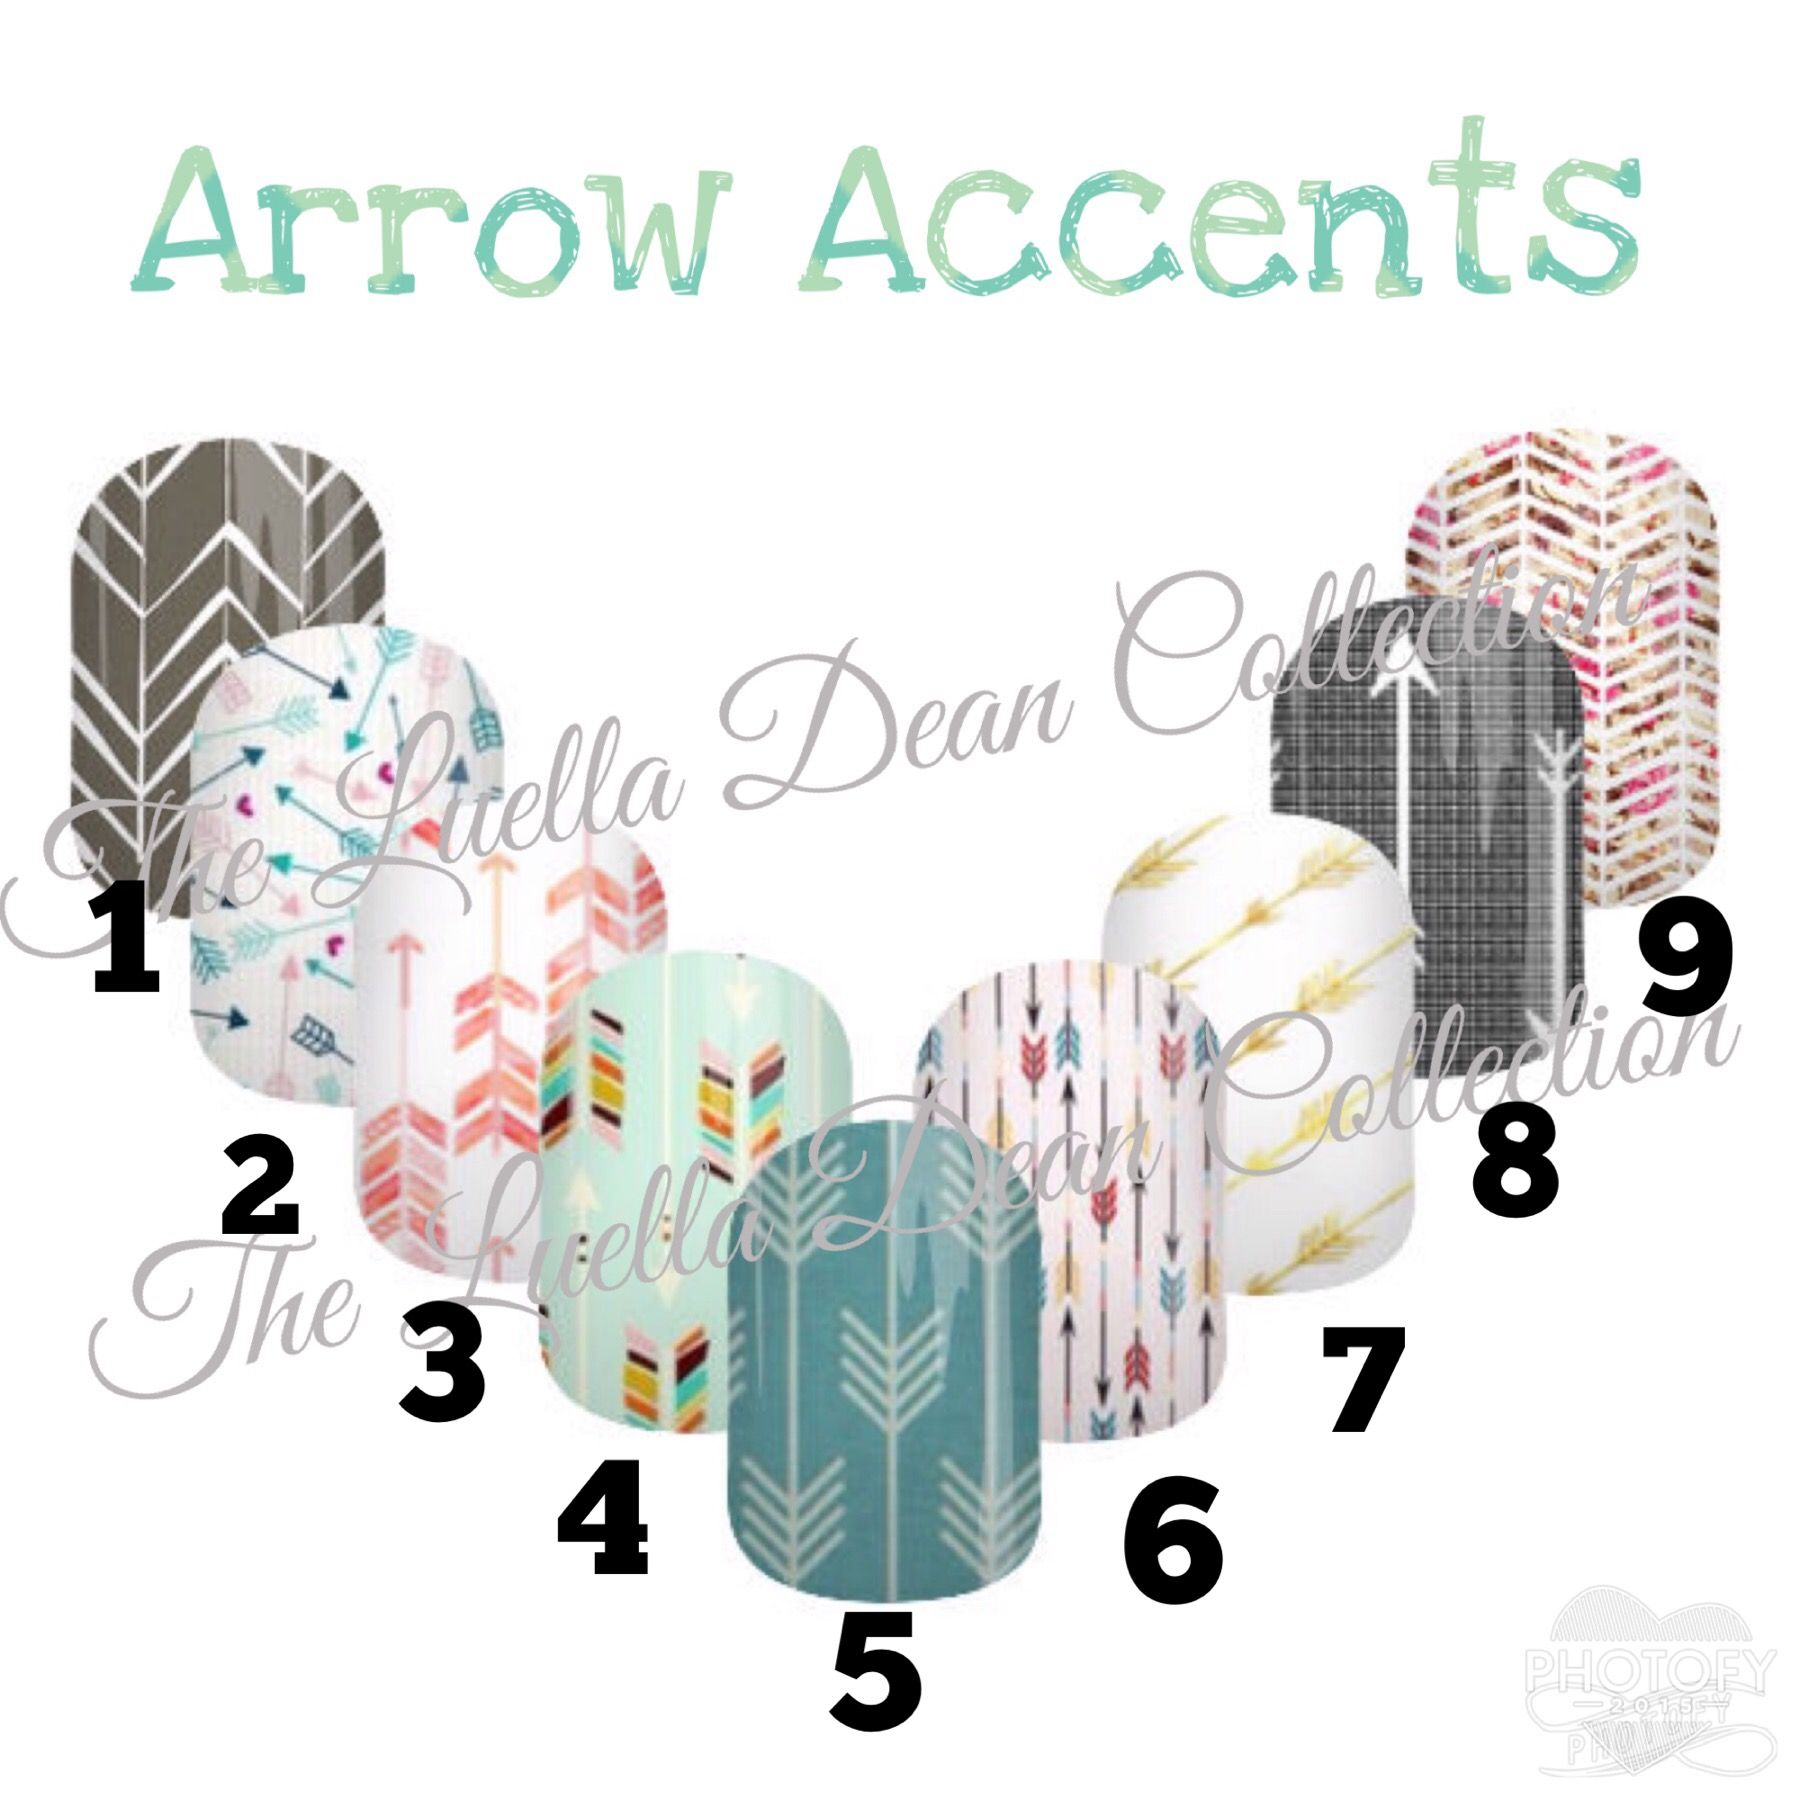 check out theses designs at jonnasjamberry jamberry net  check out theses designs at jonnasjamberry jamberry net